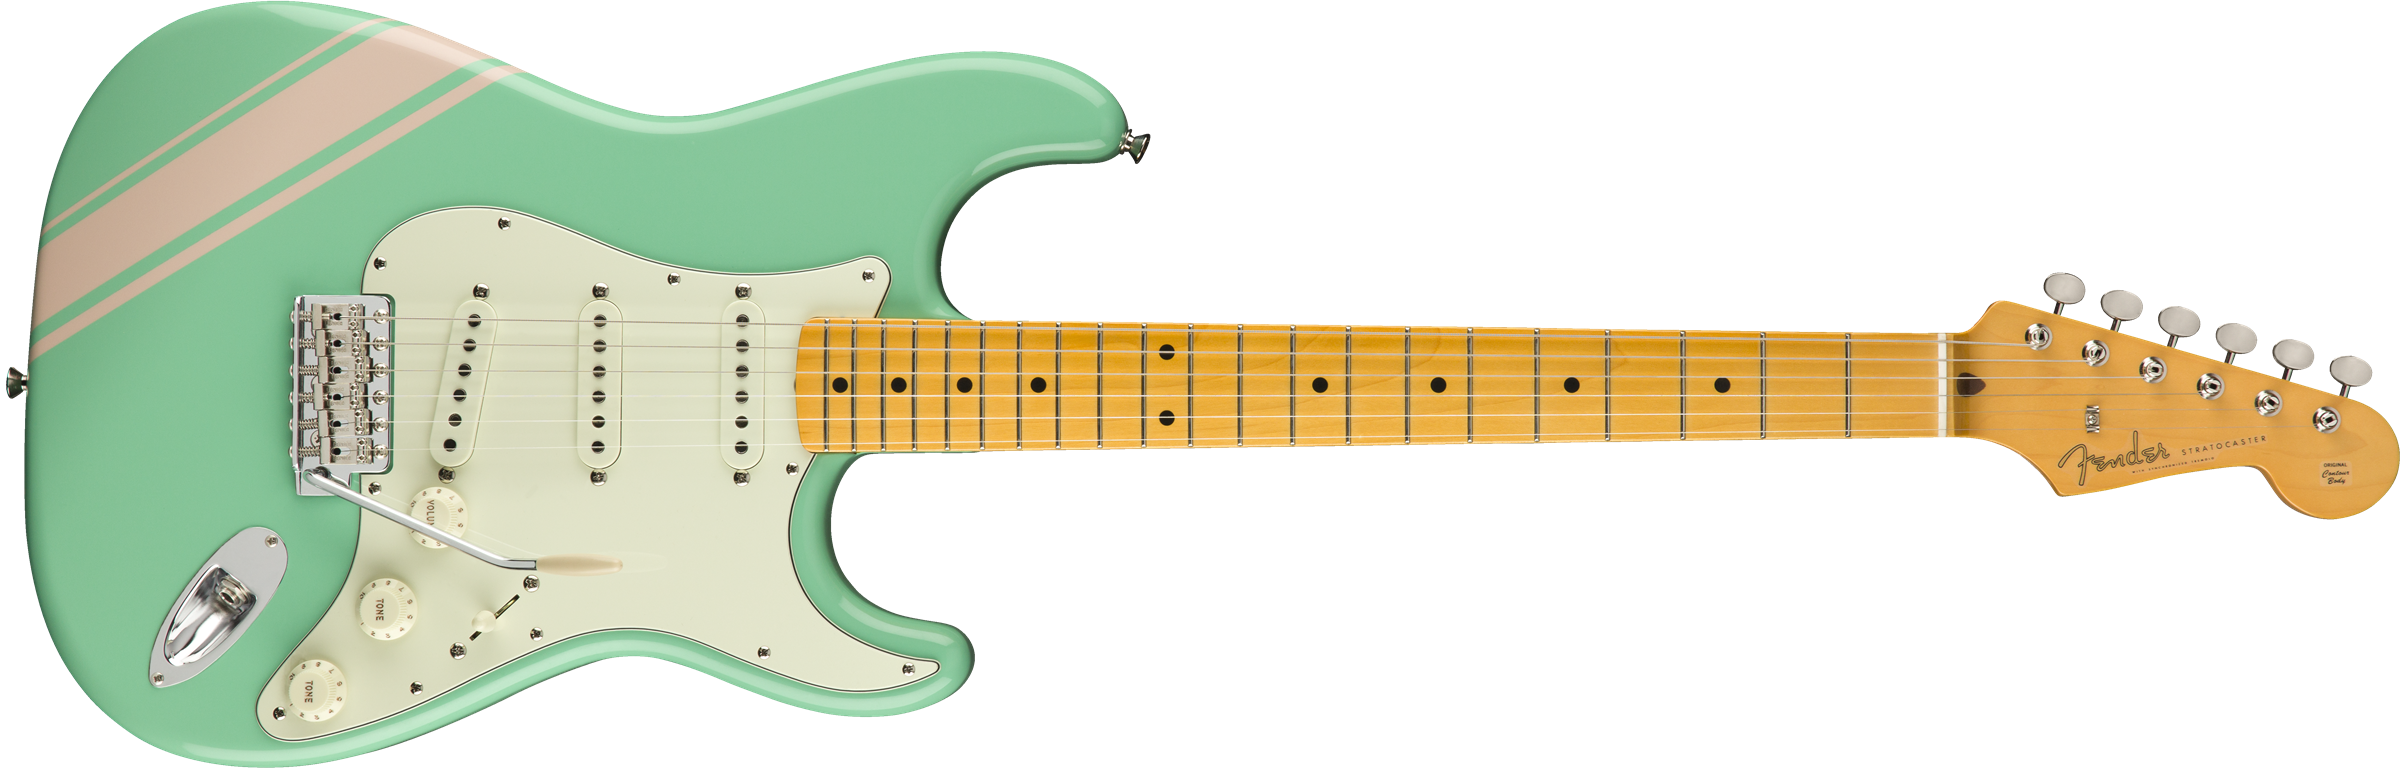 FSR Traditional 50s Strat, Maple Fingerboard, Surf Green with Shell Pink Stripes